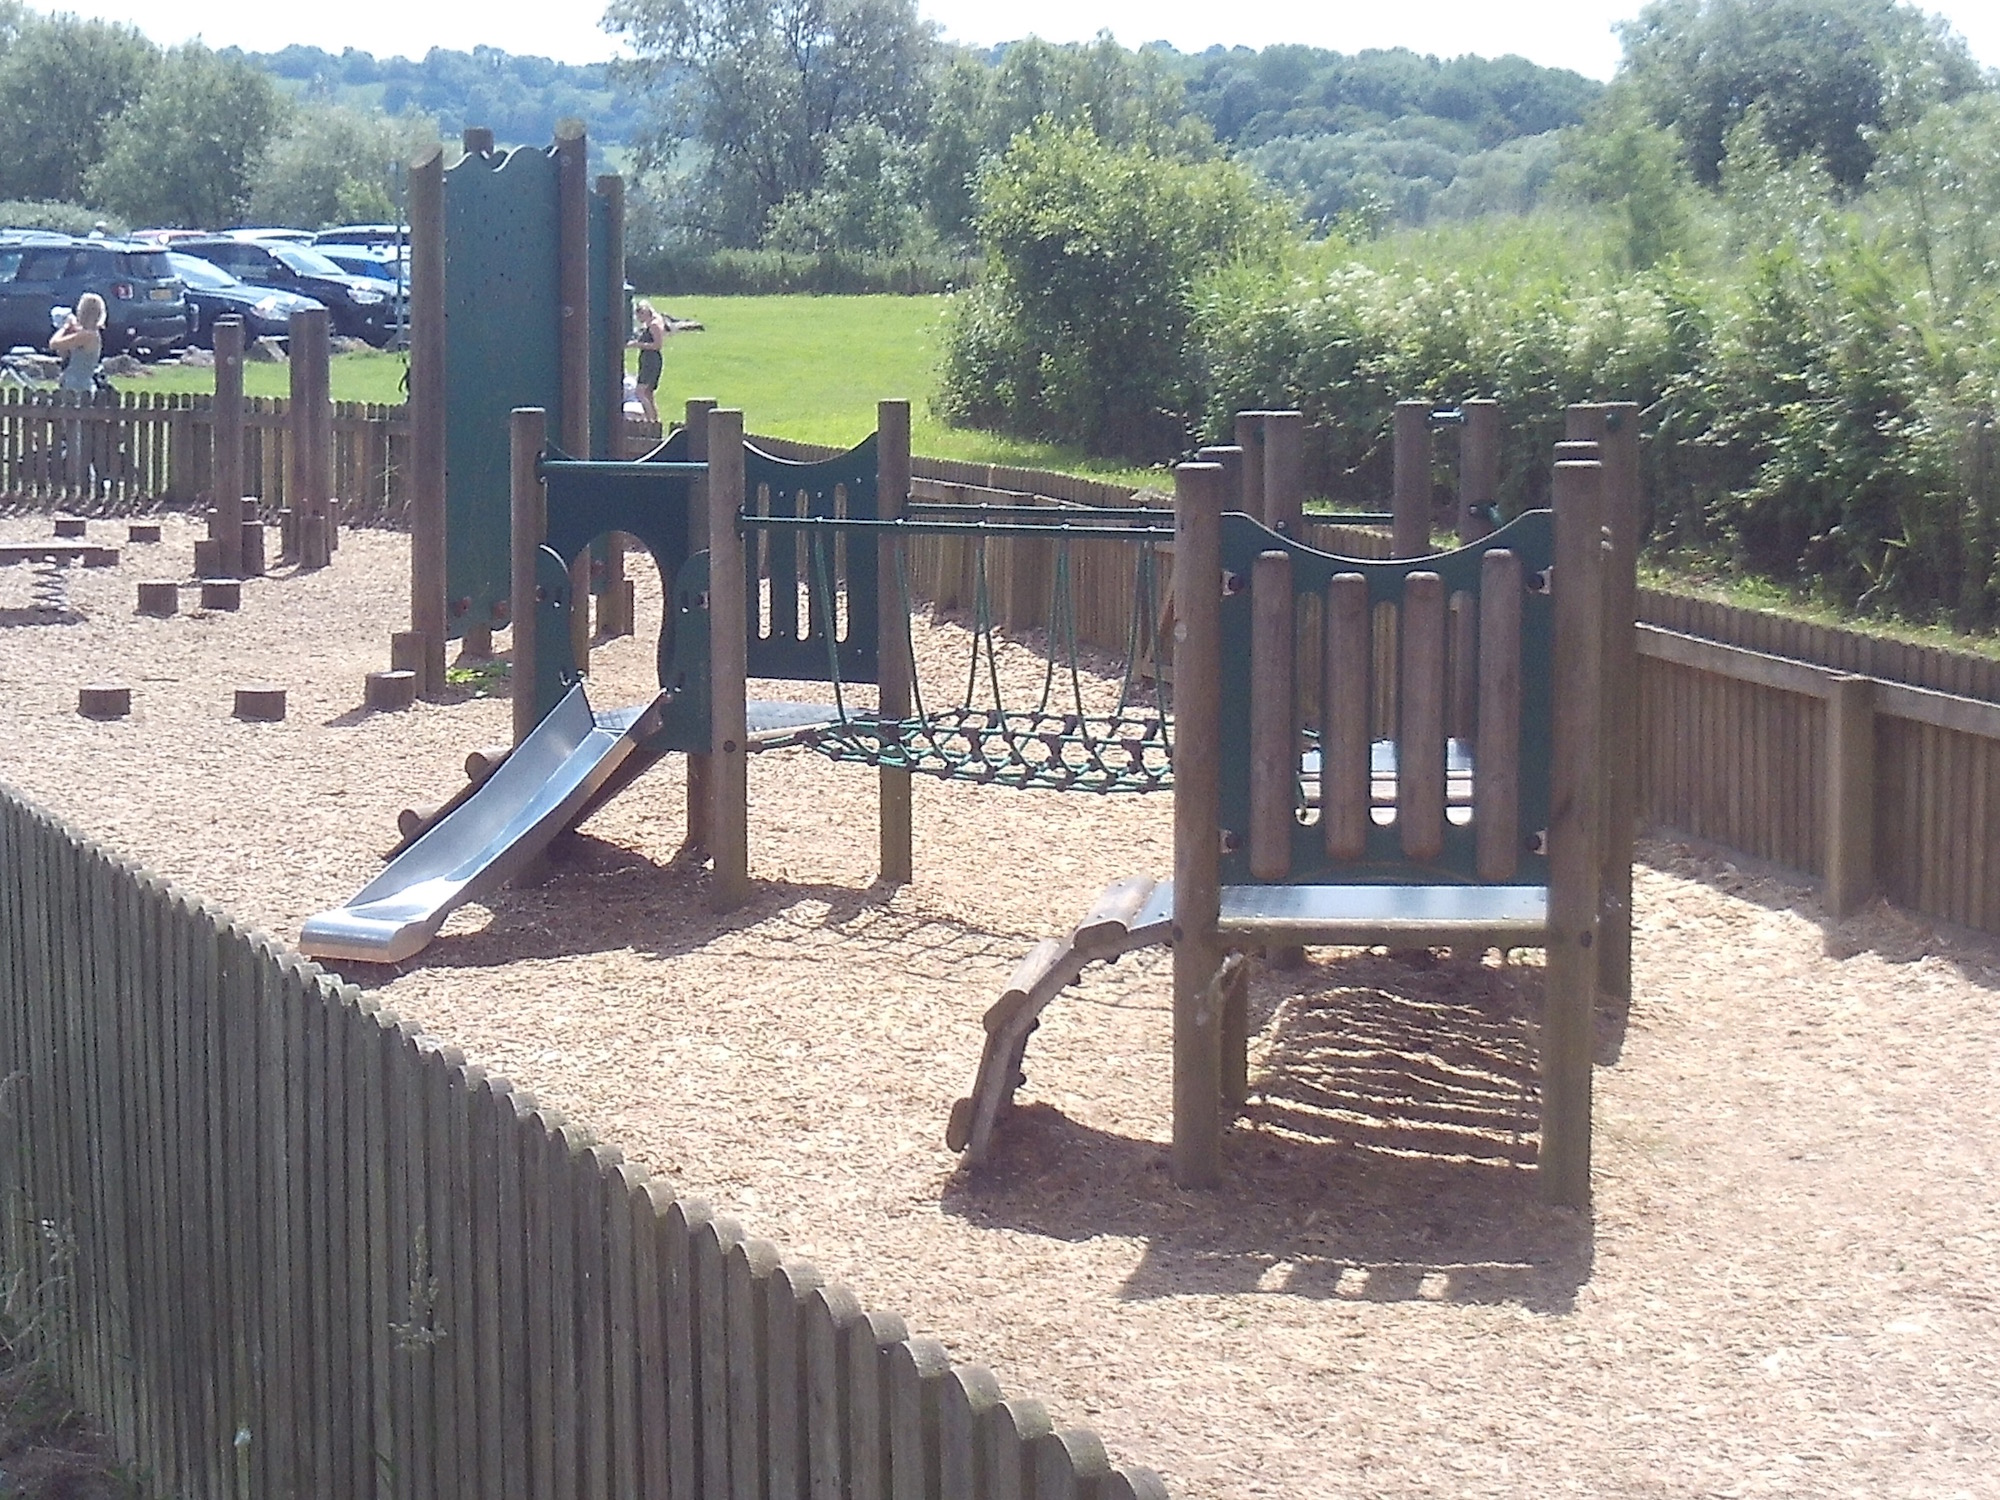 Chew Valley Play Park